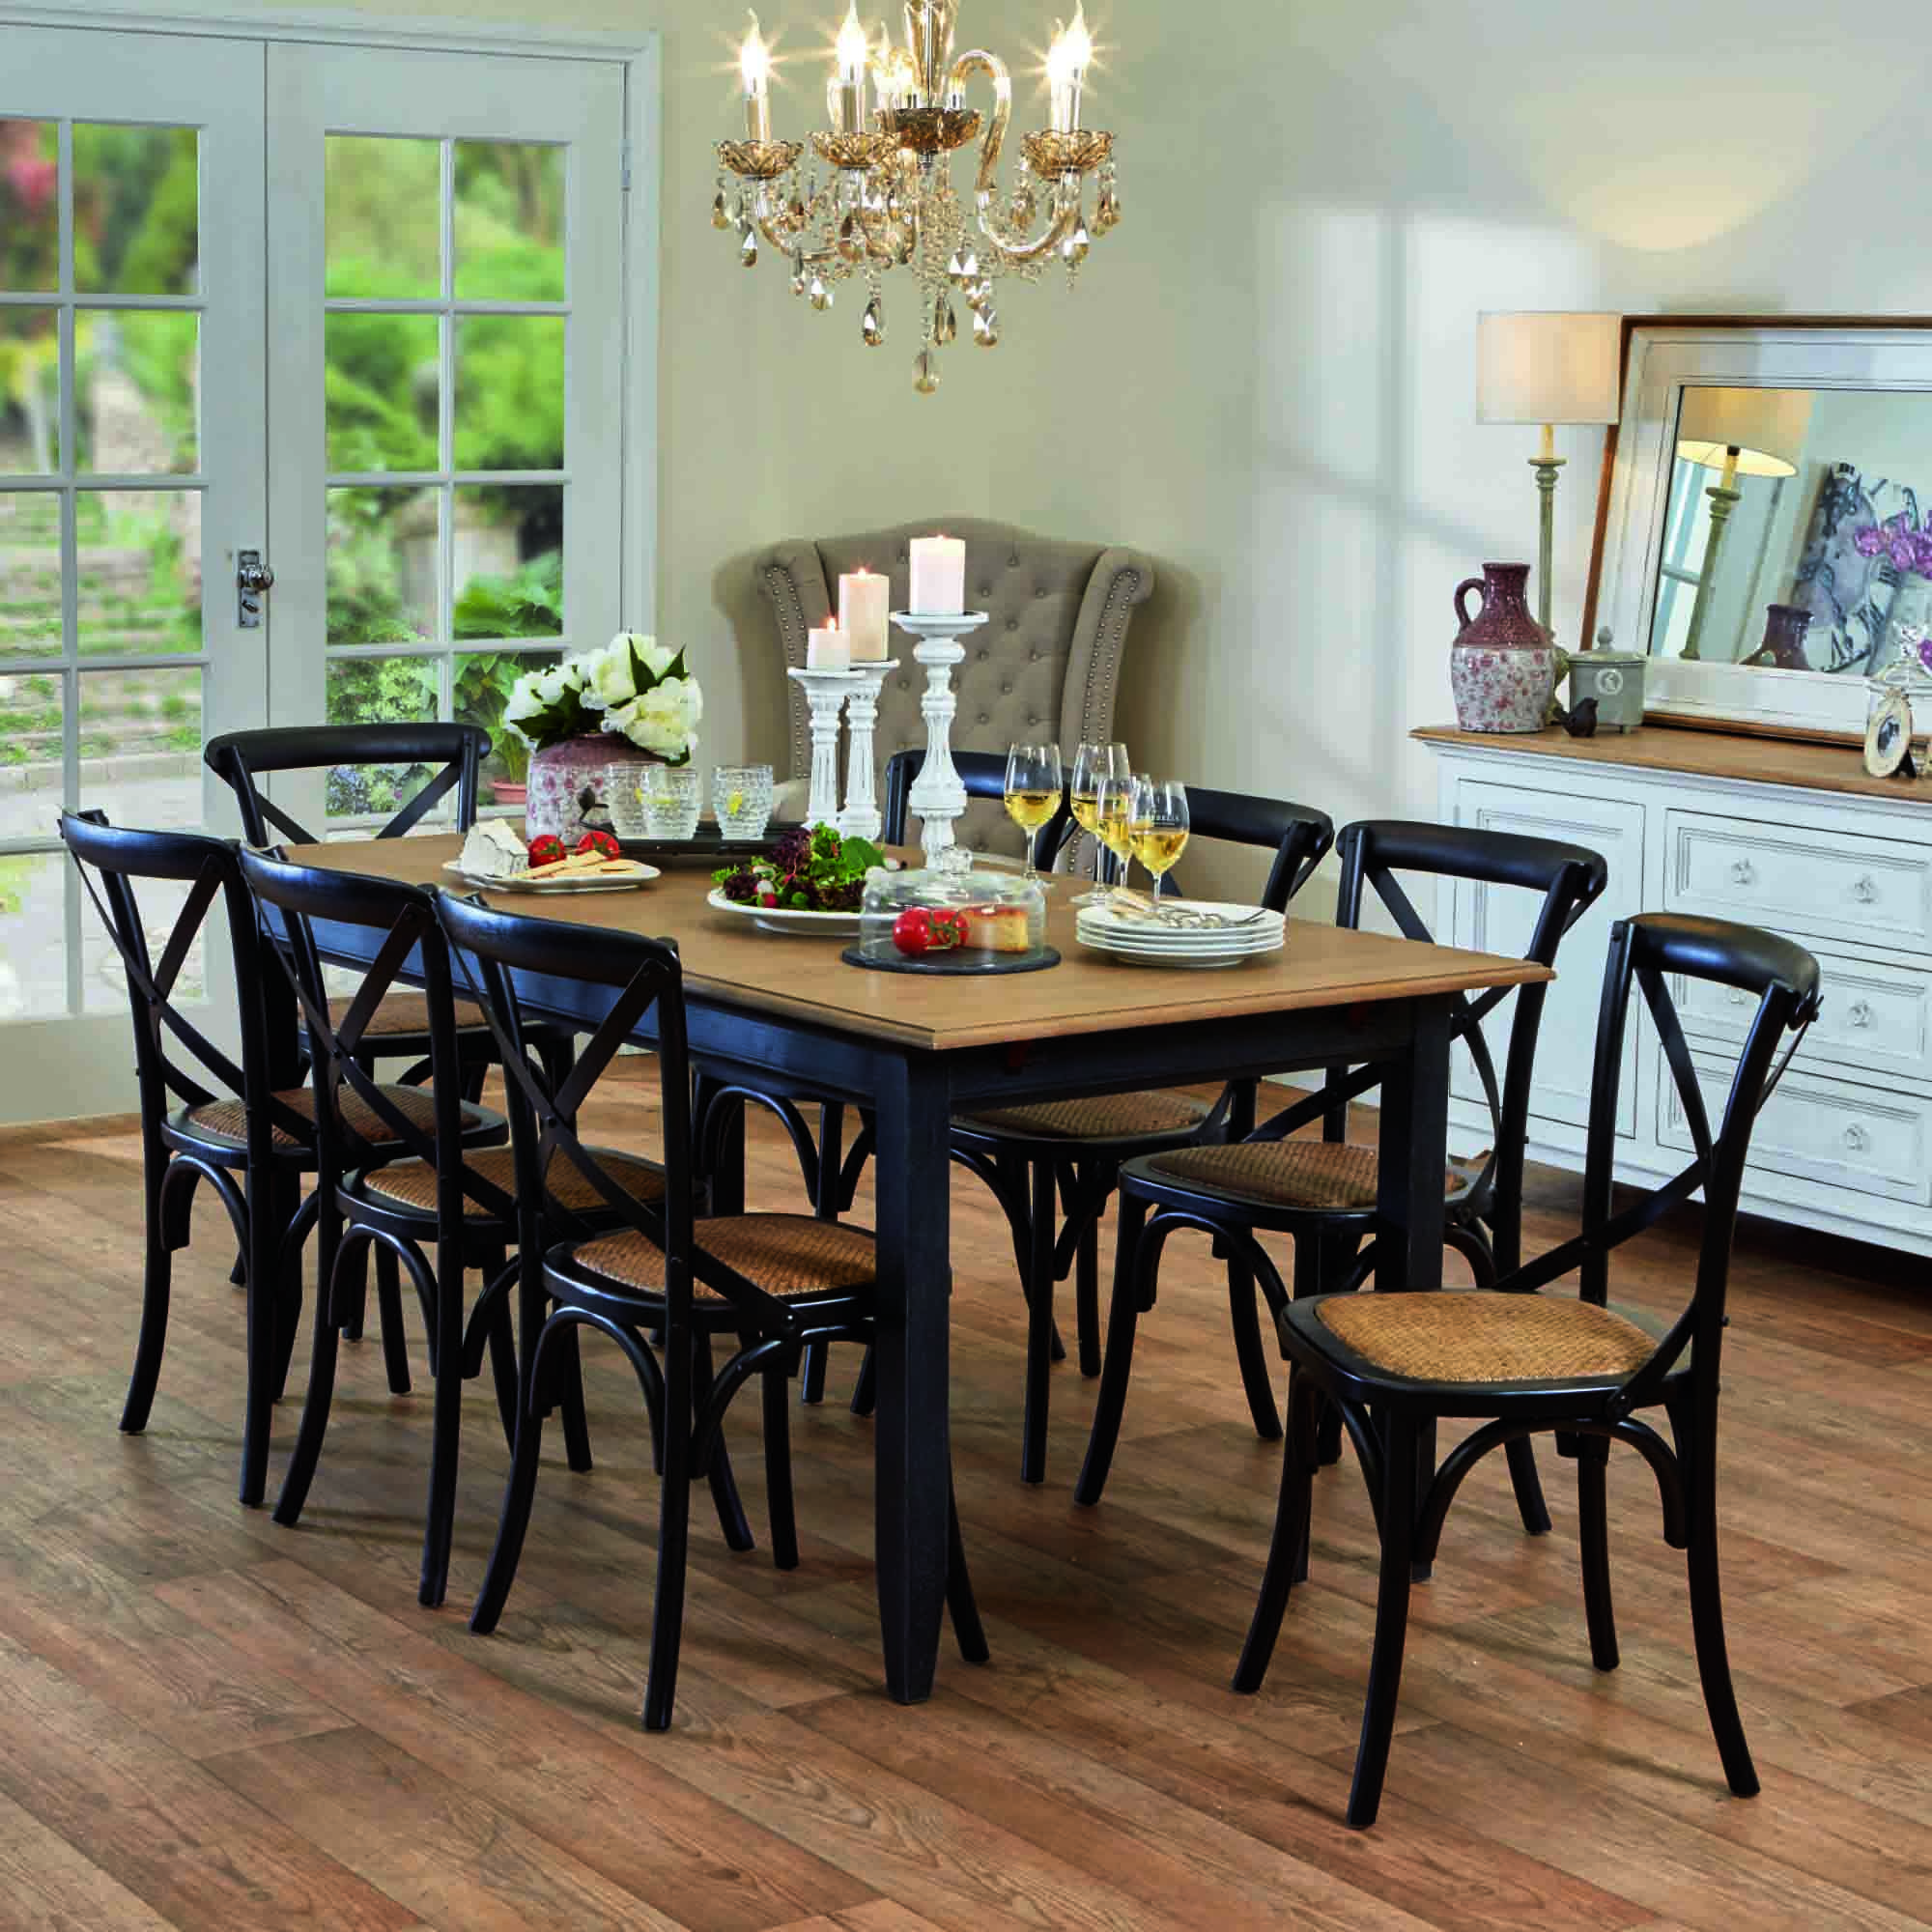 Image Result For Black Crossback Chair Cottage Dining Rooms Country Dining Tables Cross Back Dining Chairs